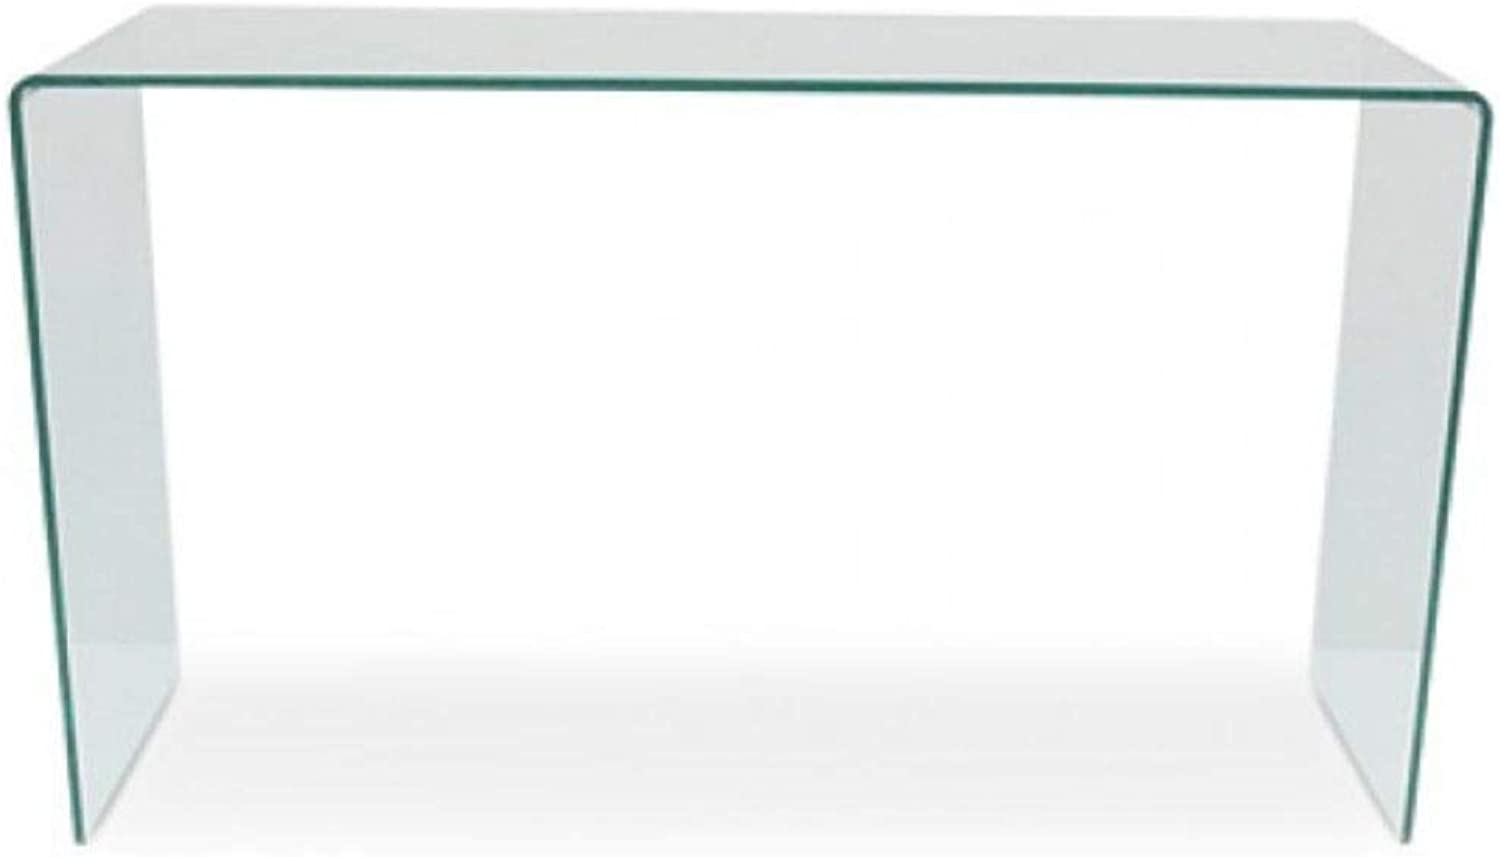 Take Me Home Furniture Waterfall Glass Console Table, Clear Glass Console Small in H30 X W30 X D8